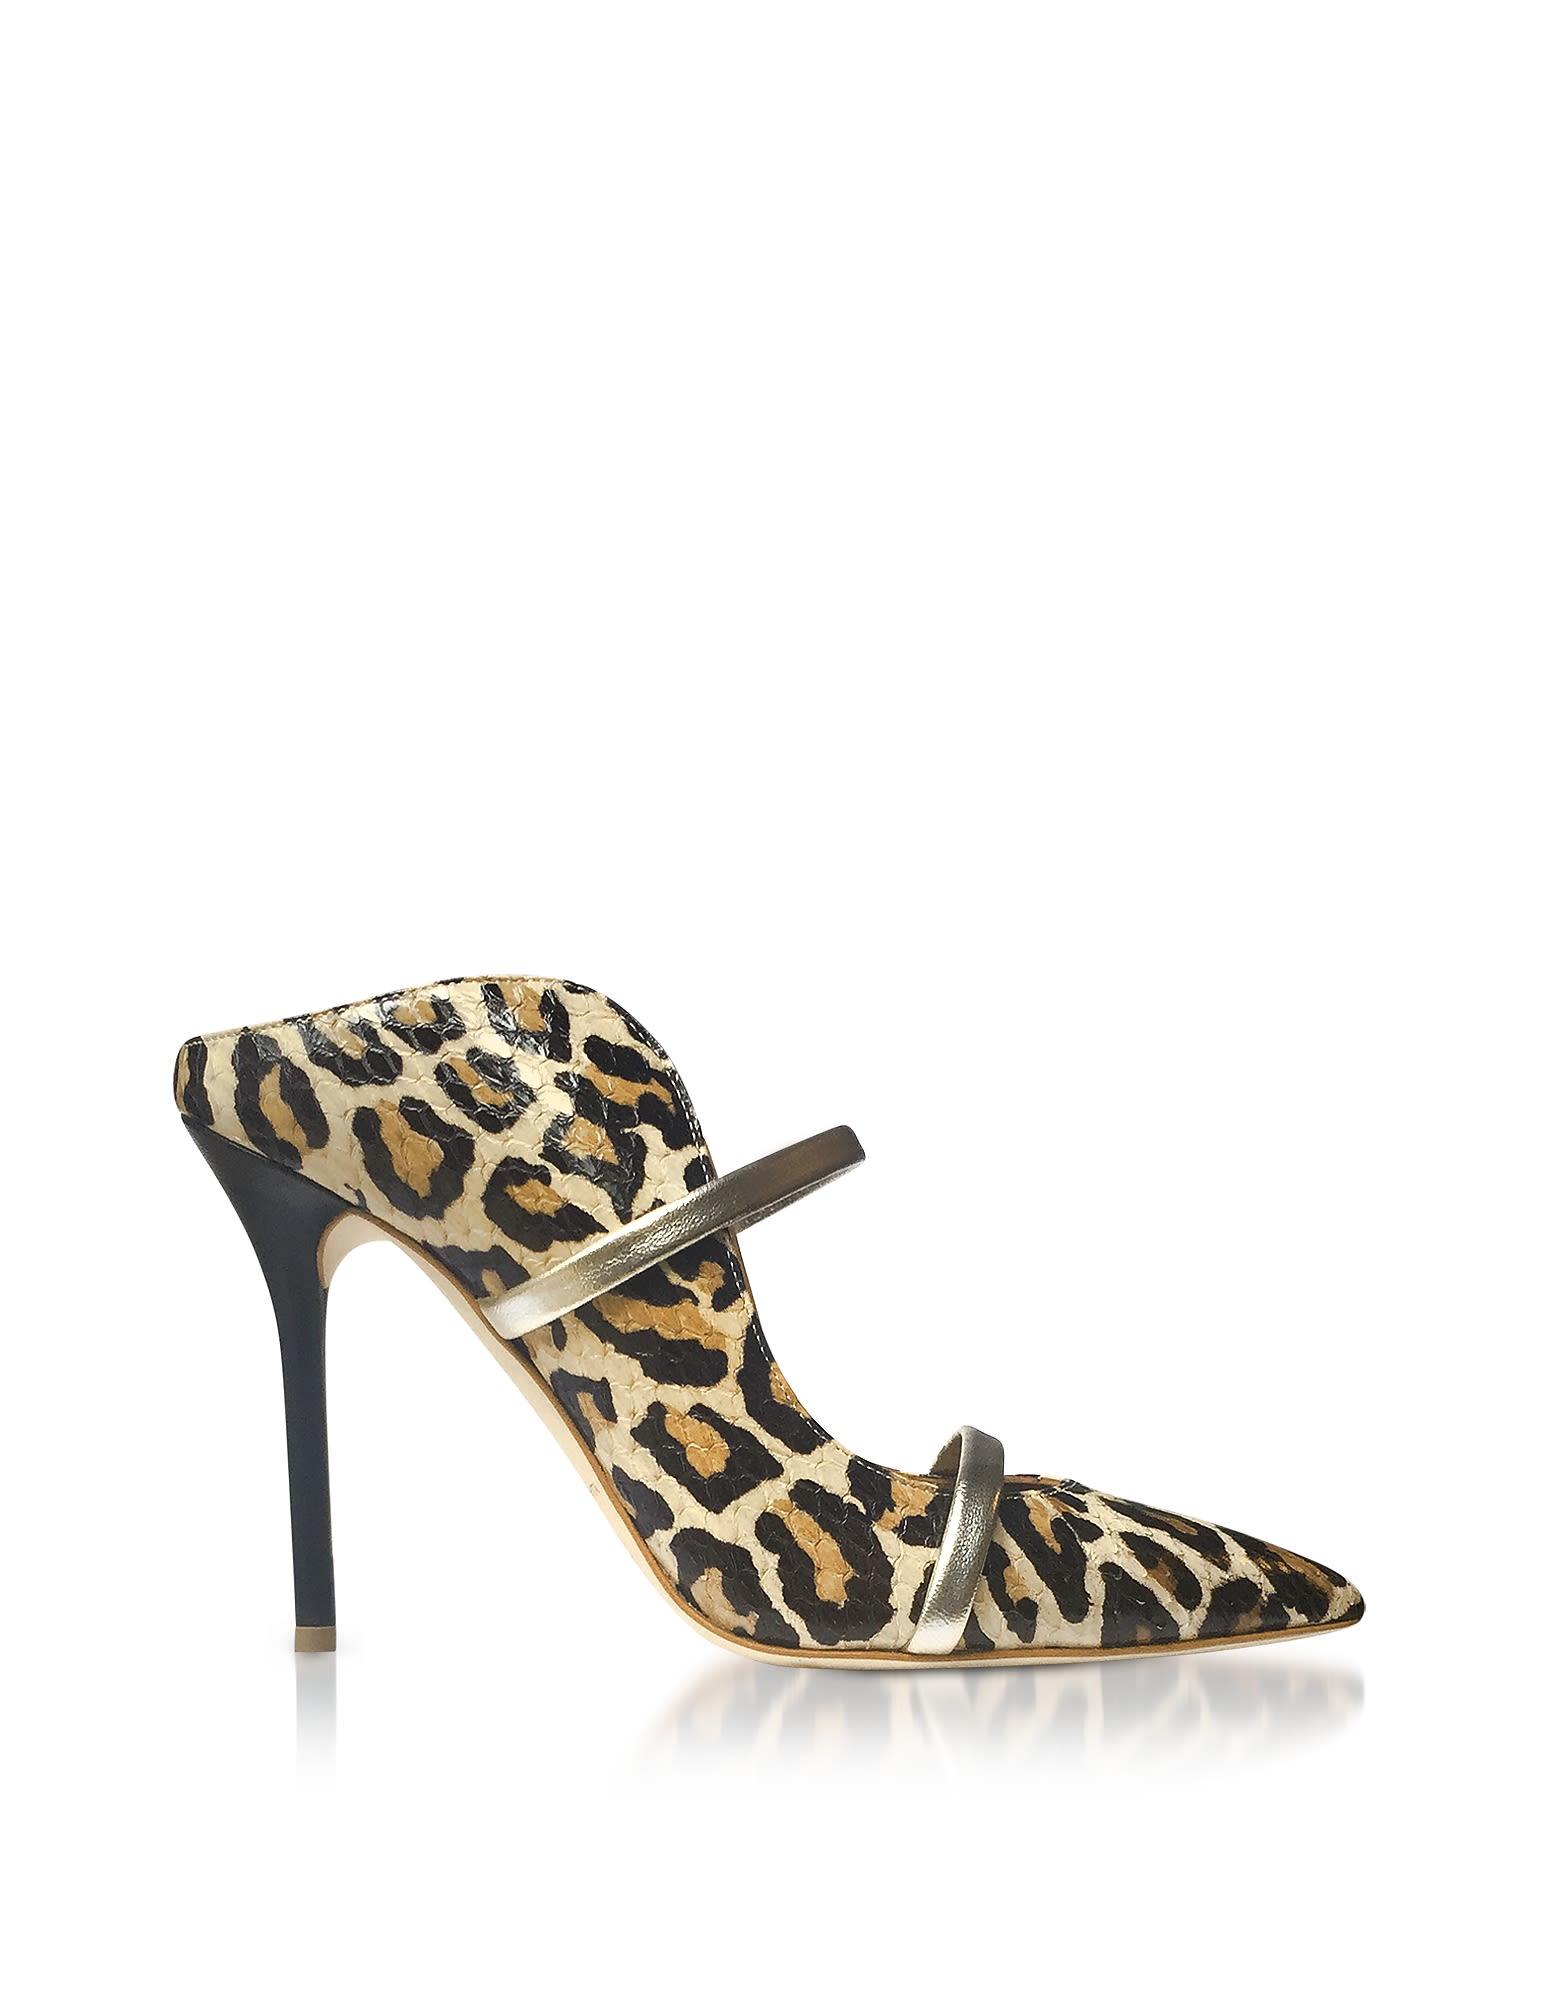 MALONE SOULIERS Designer Shoes, Leopard Printed Elaphe and Platinum Nappa Leather Maureen High Heel Mules